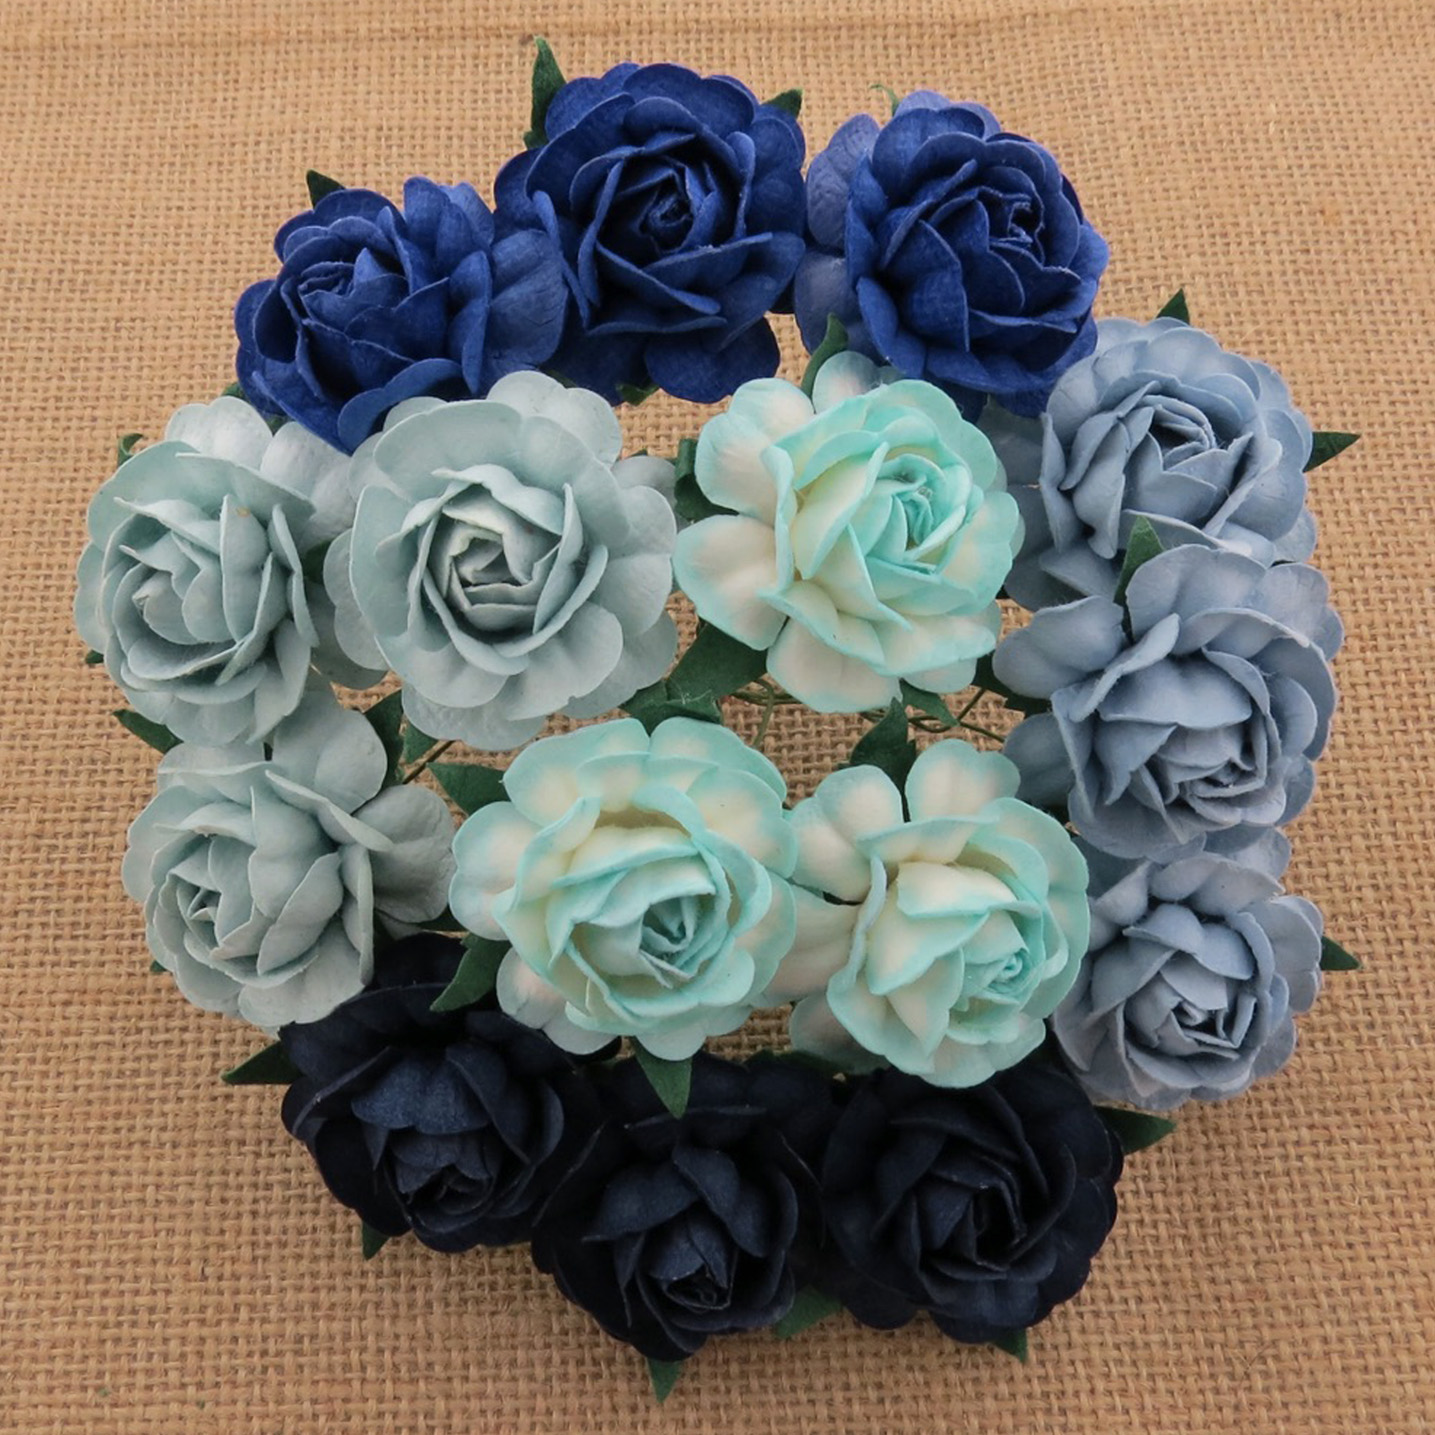 50 MIXED BLUE MULBERRY PAPER TEA ROSES 40mm - 5 COLOR